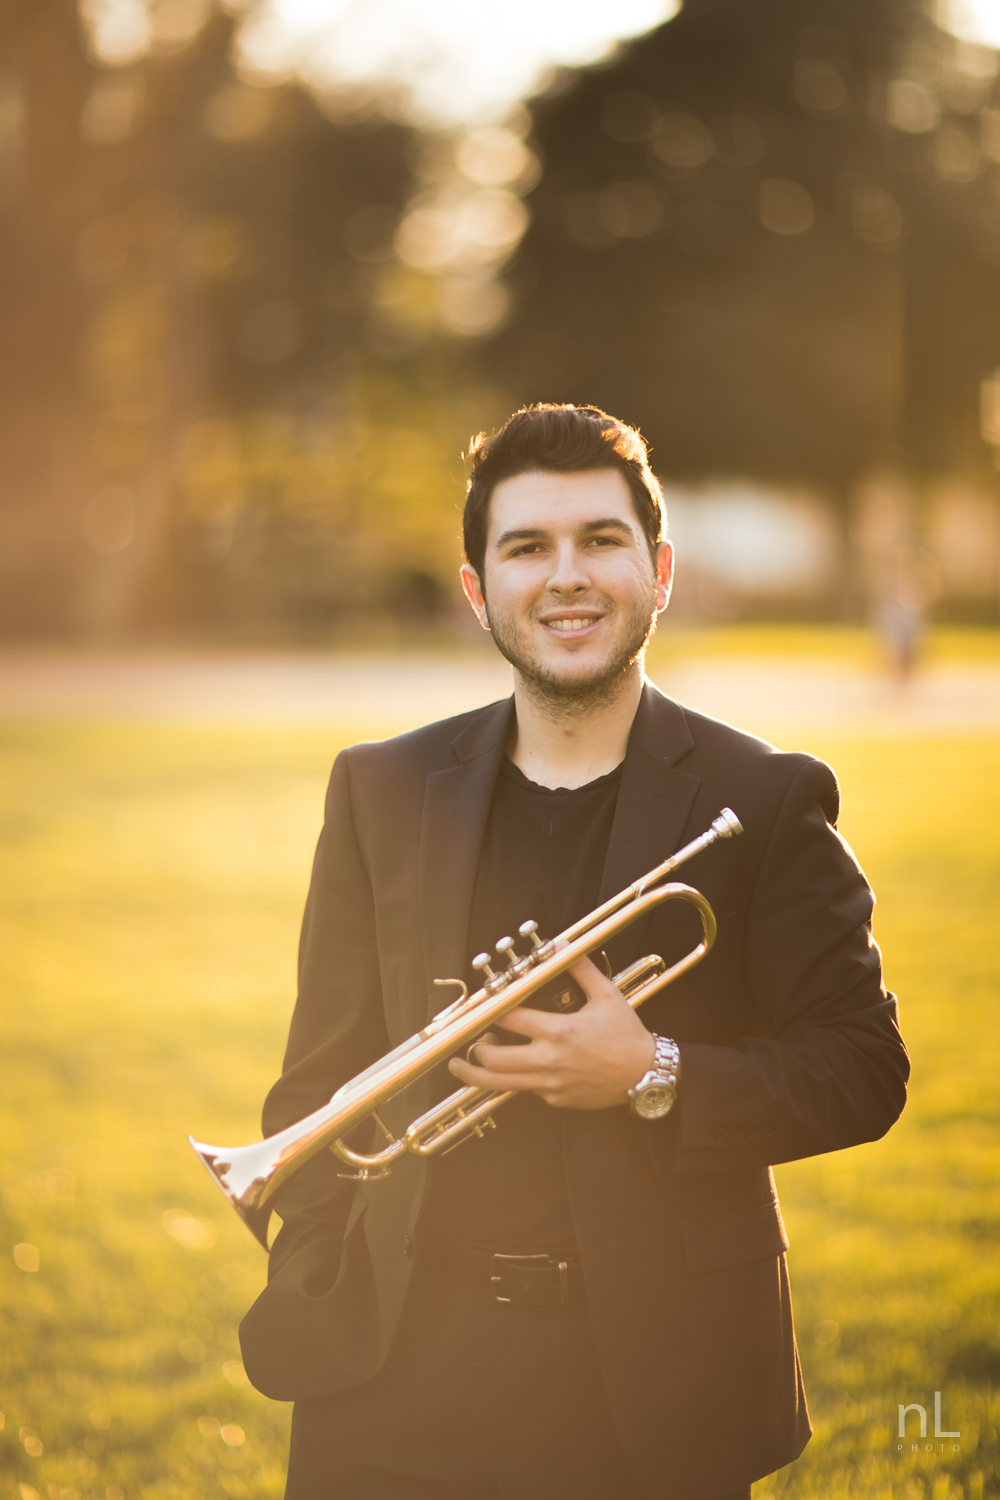 los-angeles-musician-portraits-trumpet-player-at-beautiful-sunset-light